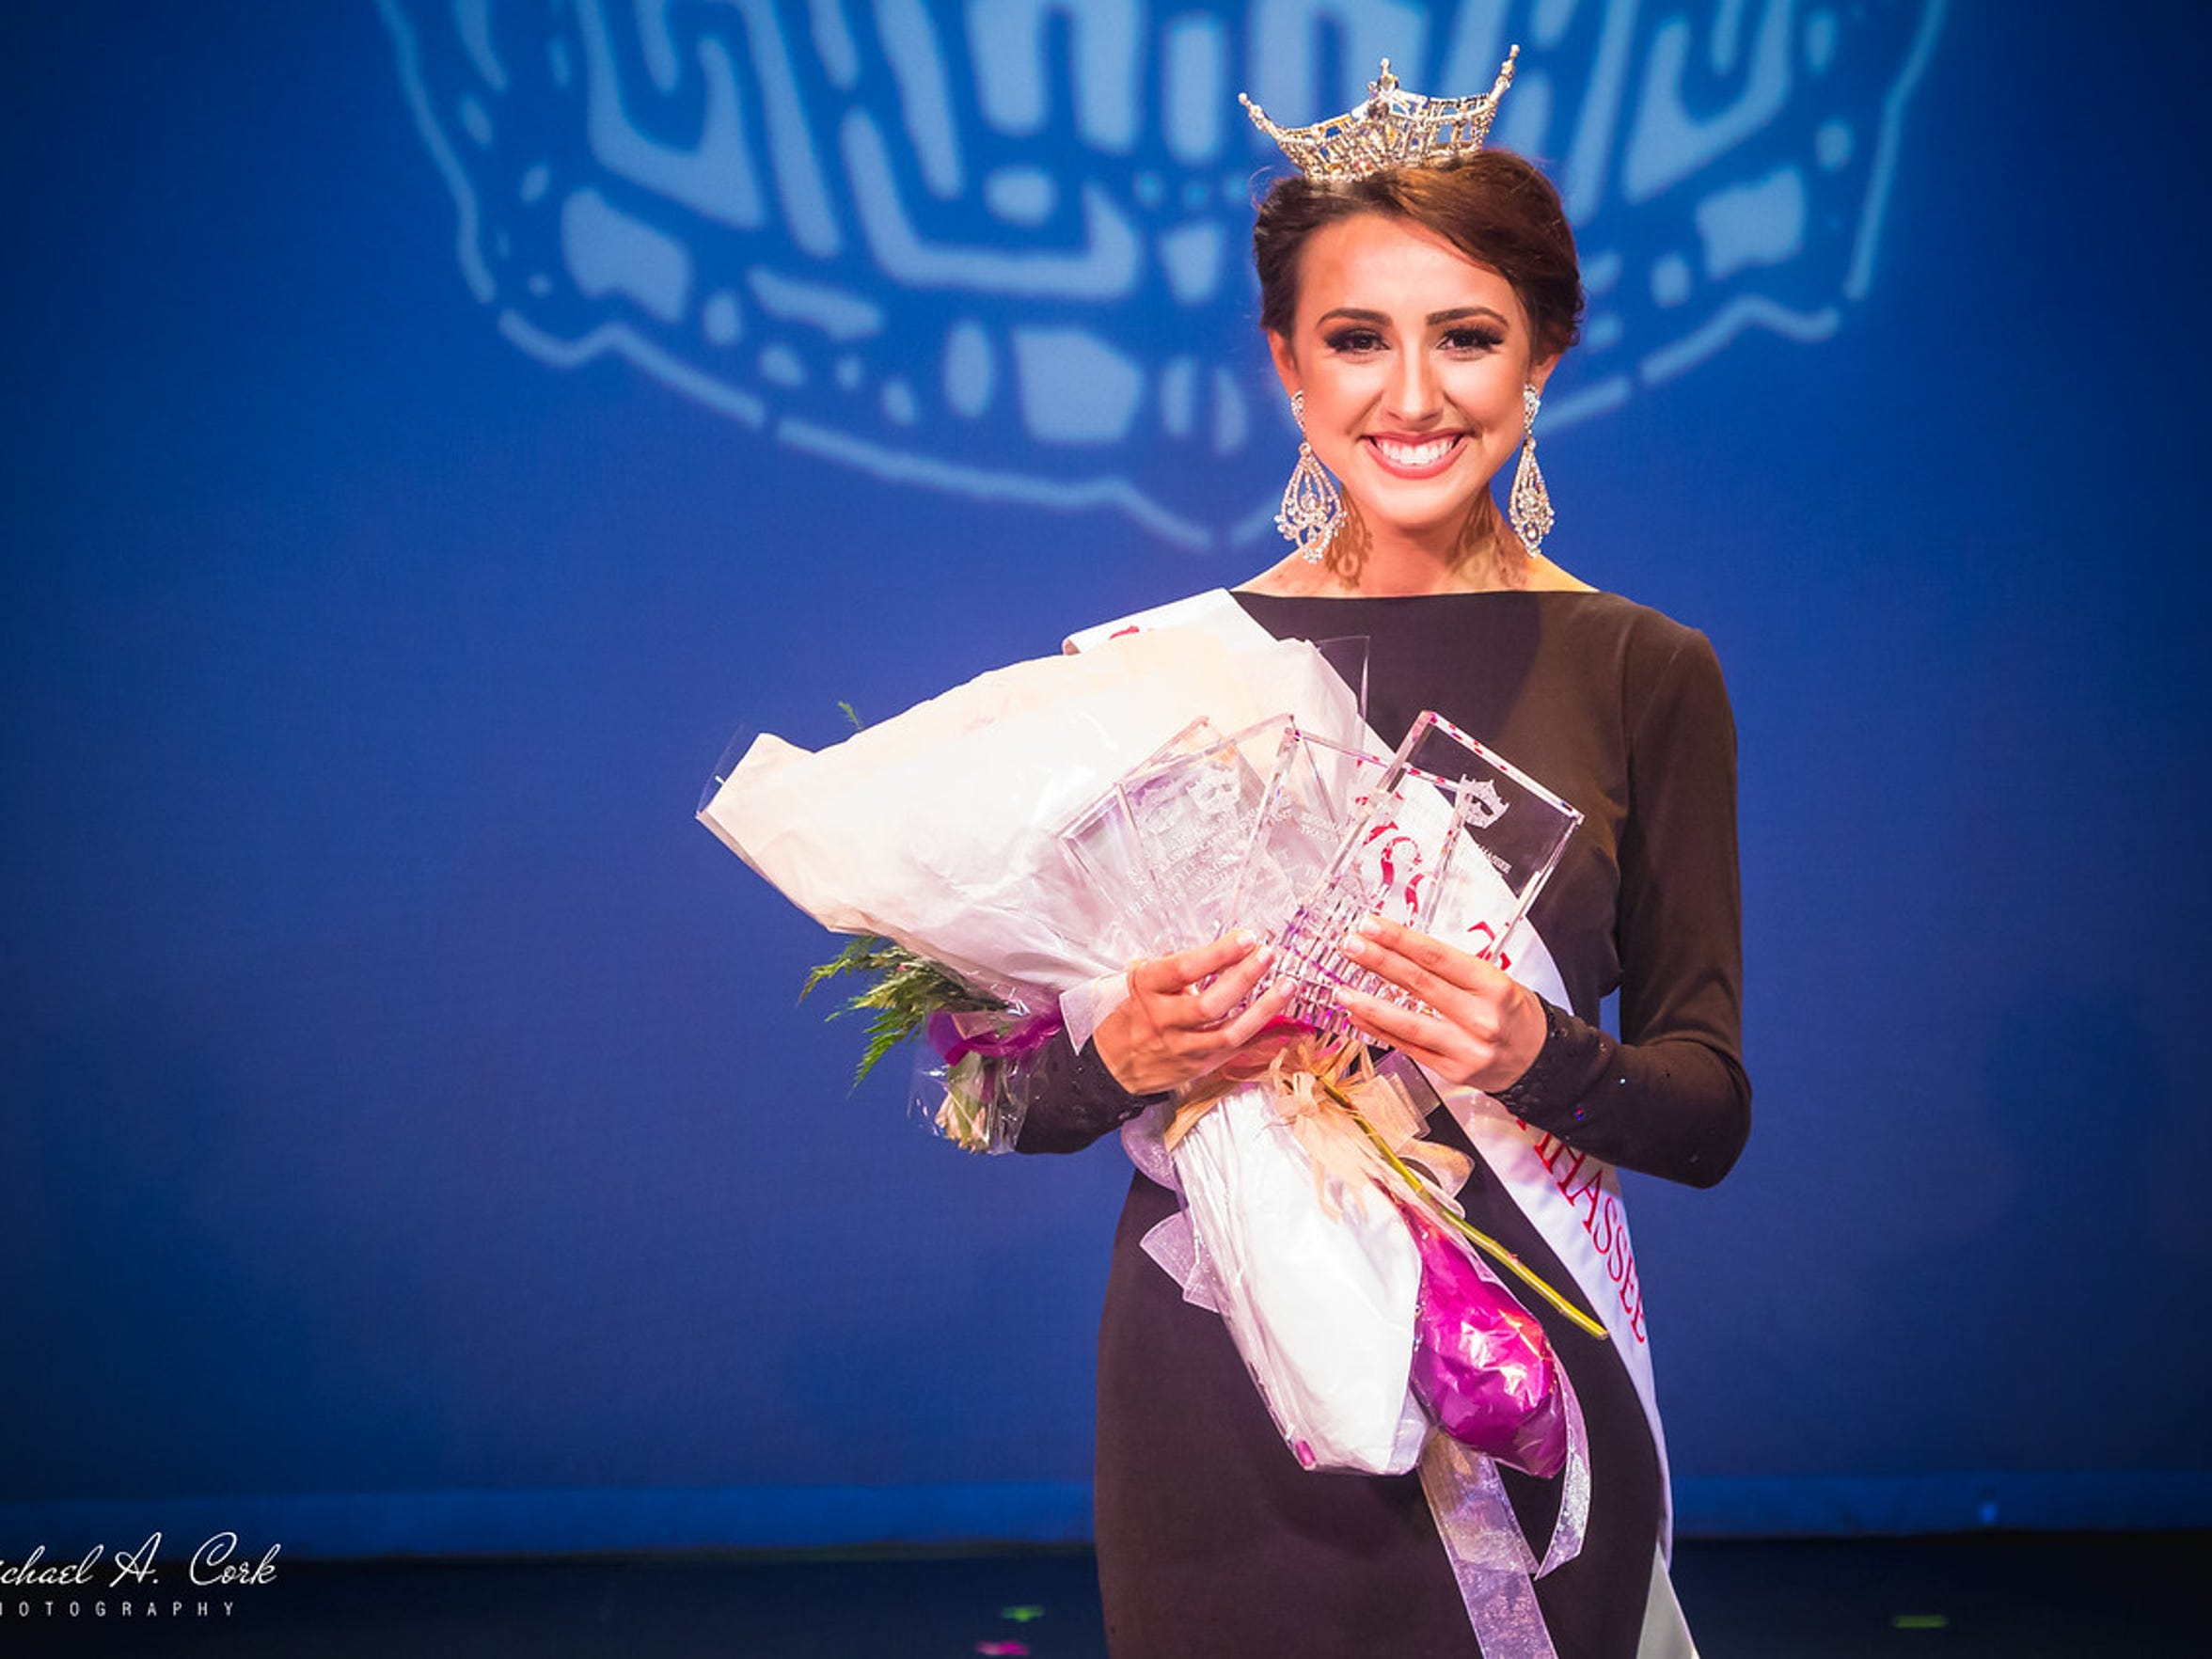 On Saturday, March 24th, 2018, Sabet was crowned Miss Tallahassee in the Miss Tallahassee pageant held on FAMU's campus. For Sabet, this is step one in her journey to becoming Miss Florida and, fingers crossed, Miss America.